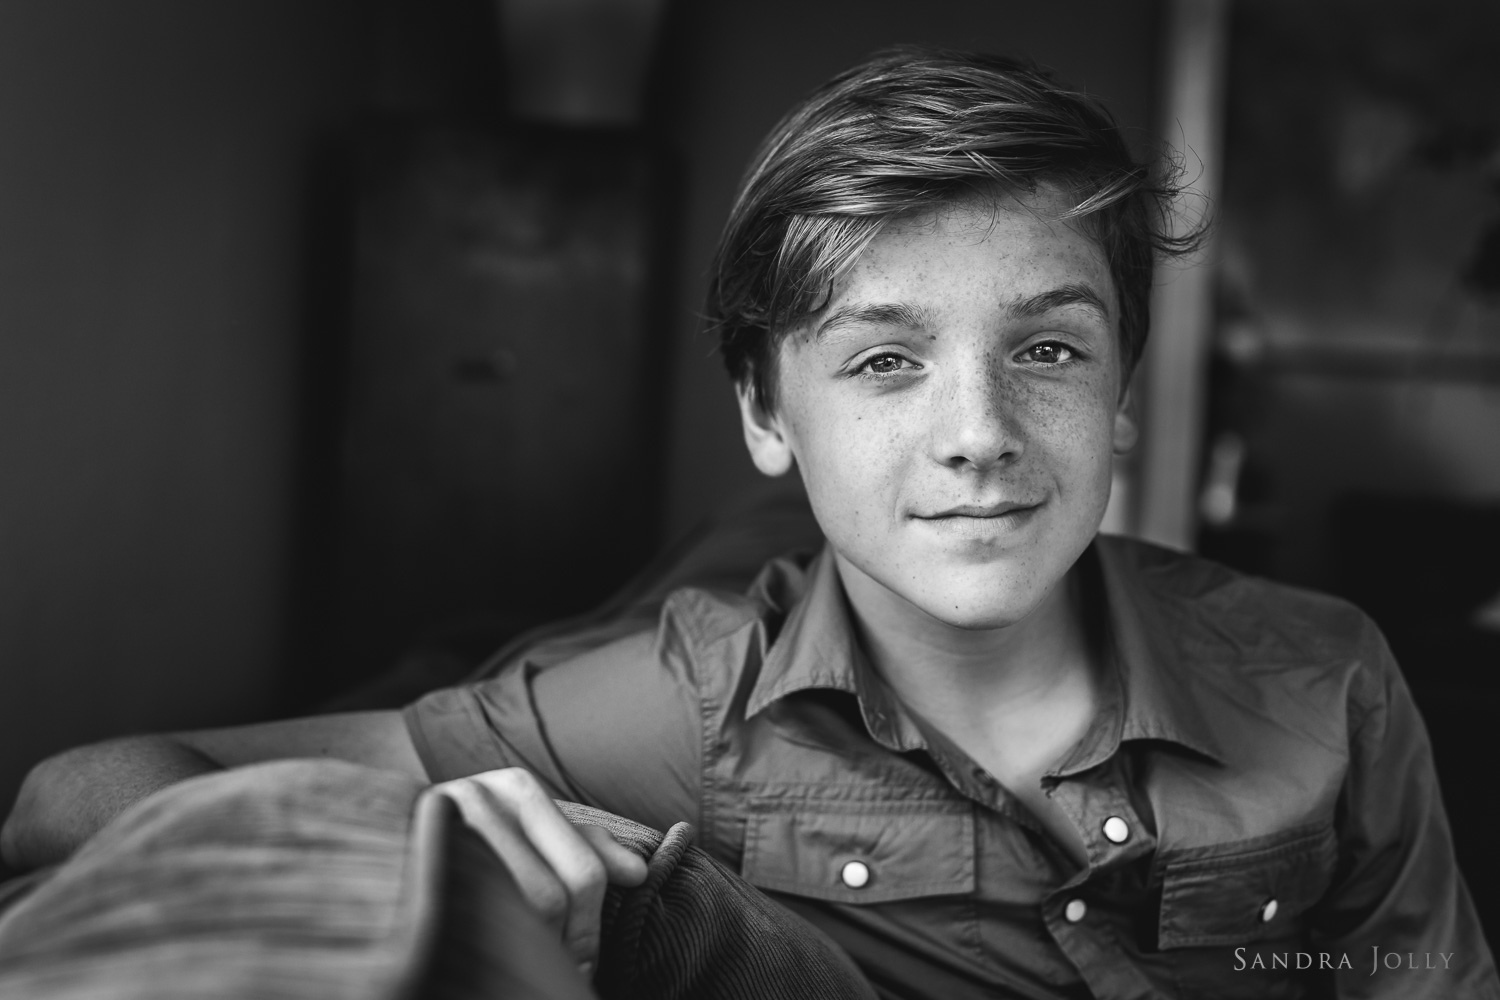 teenage-boy-by-Danderyd-familjefotograf-Sandra-Jolly.jpg